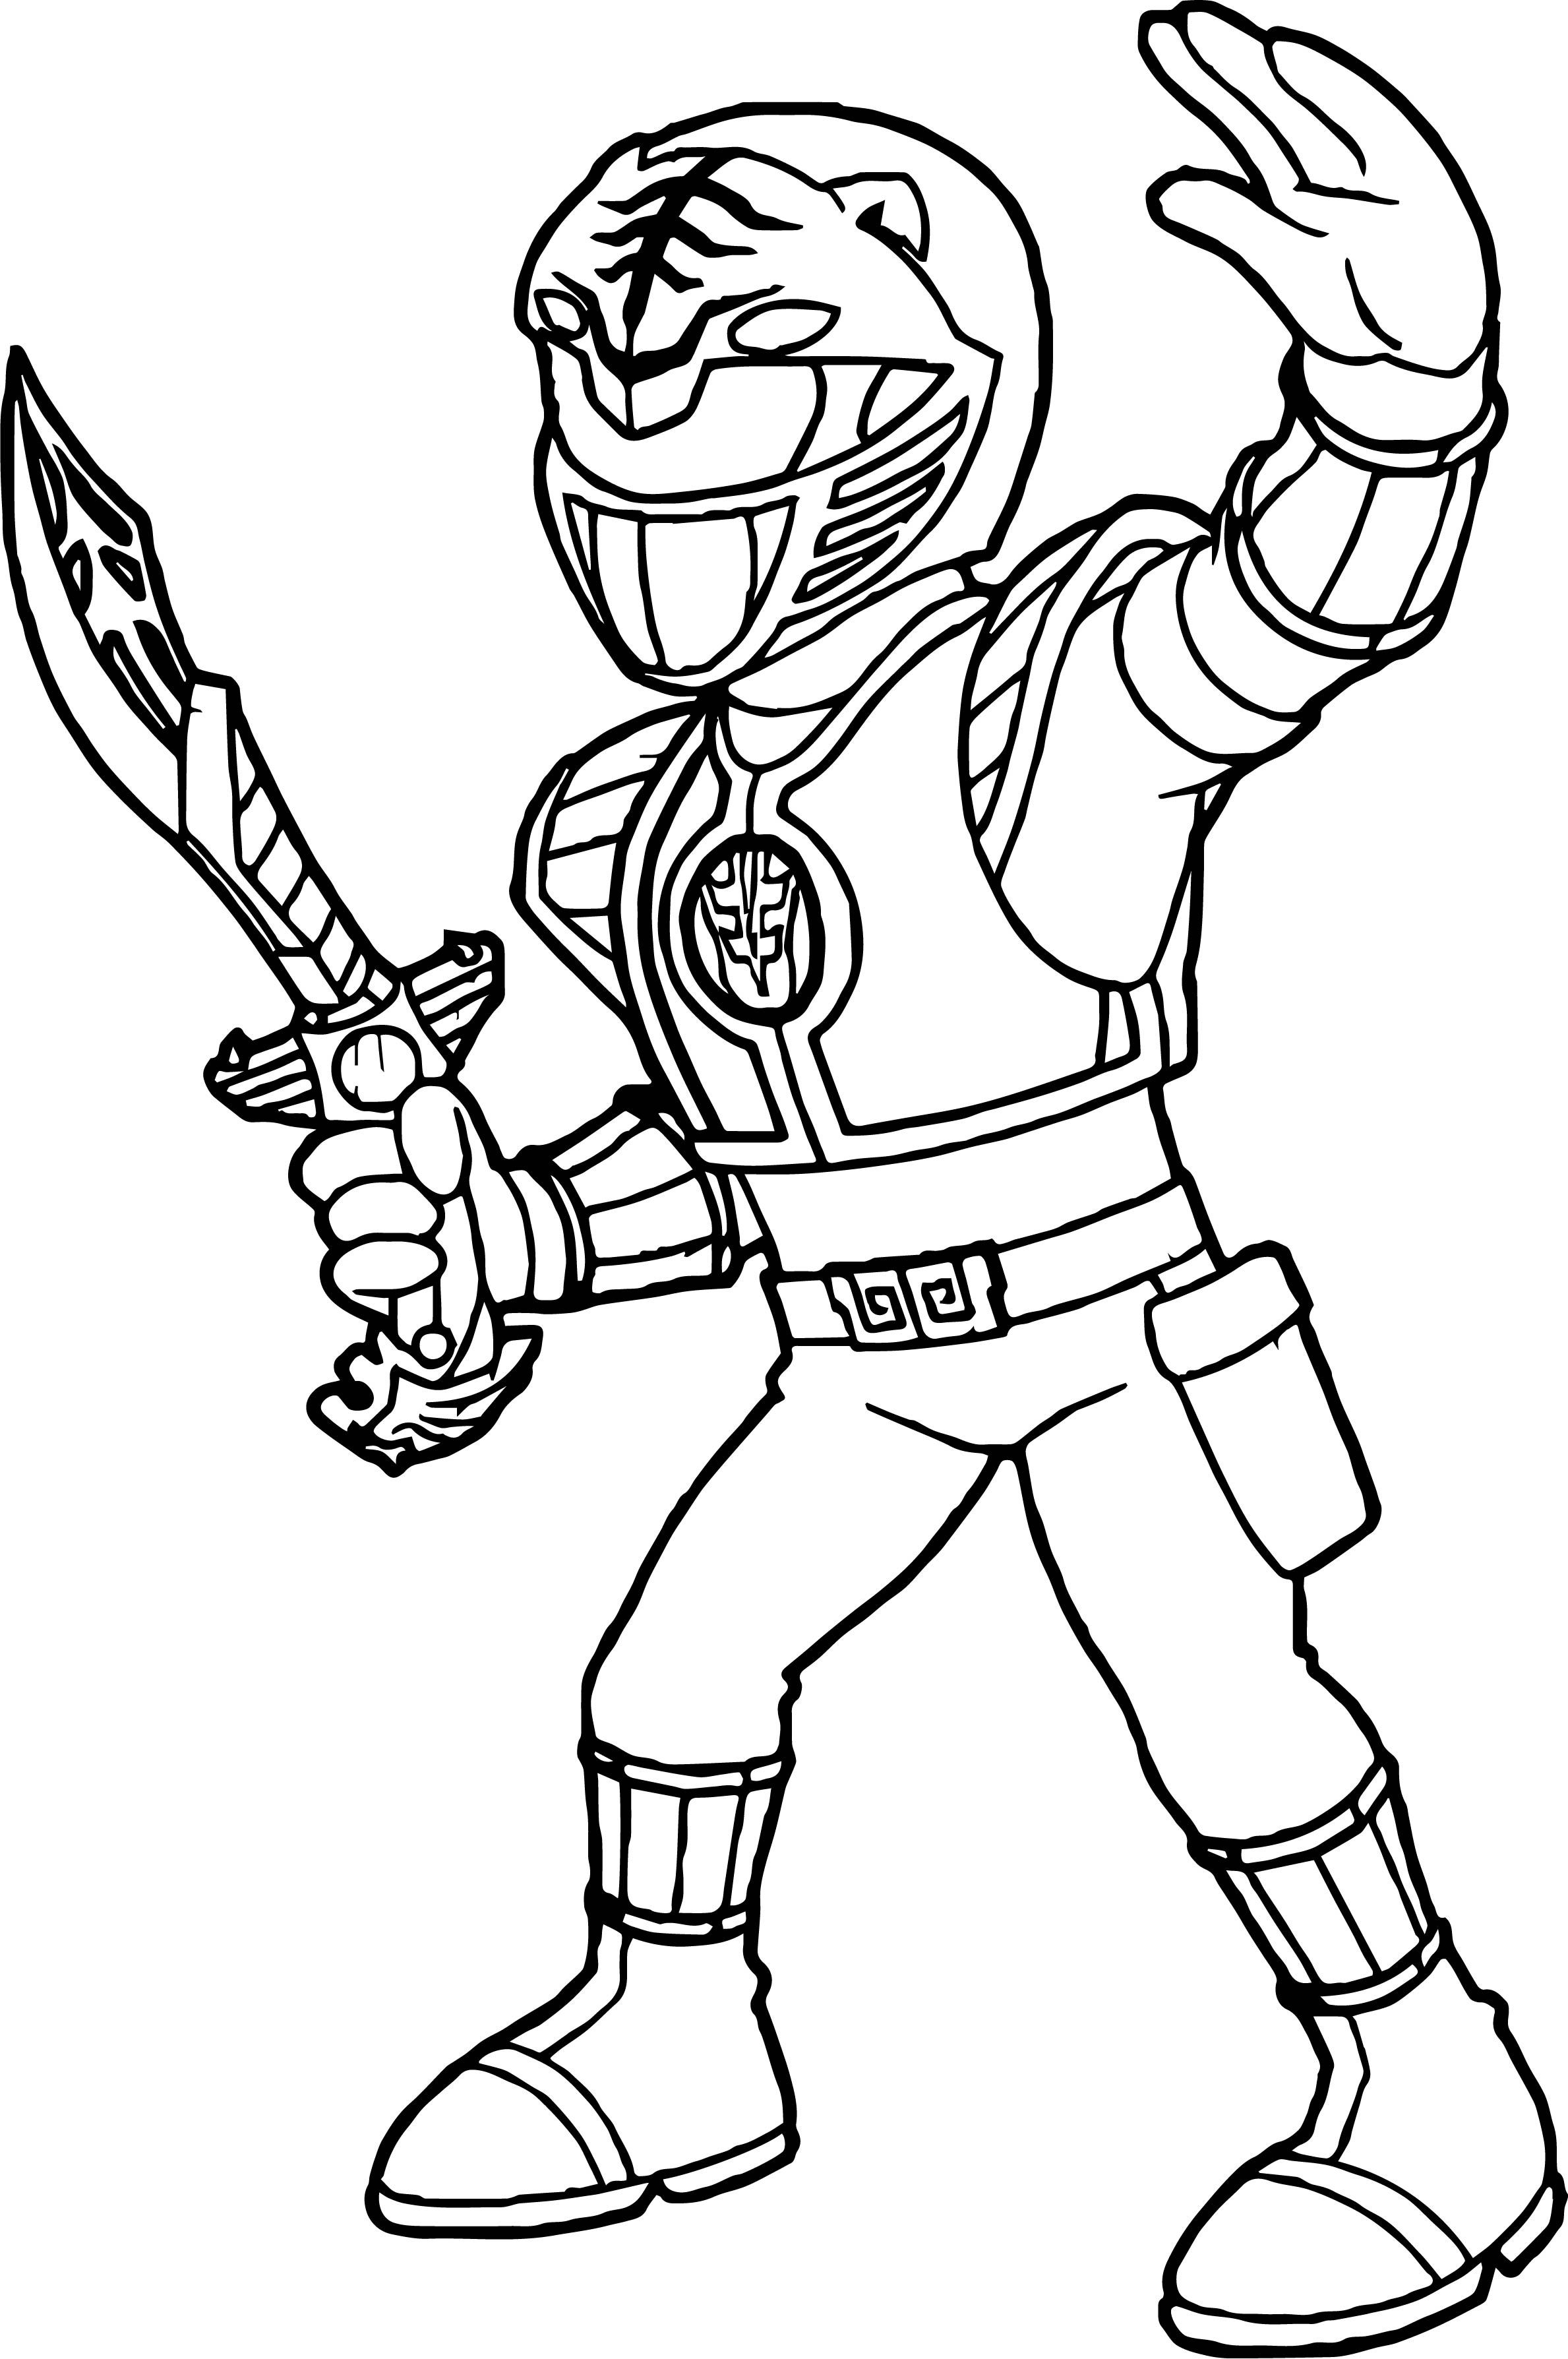 power ranger pictures to color print images cool power rangers samurai coloring pages pictures color ranger power to